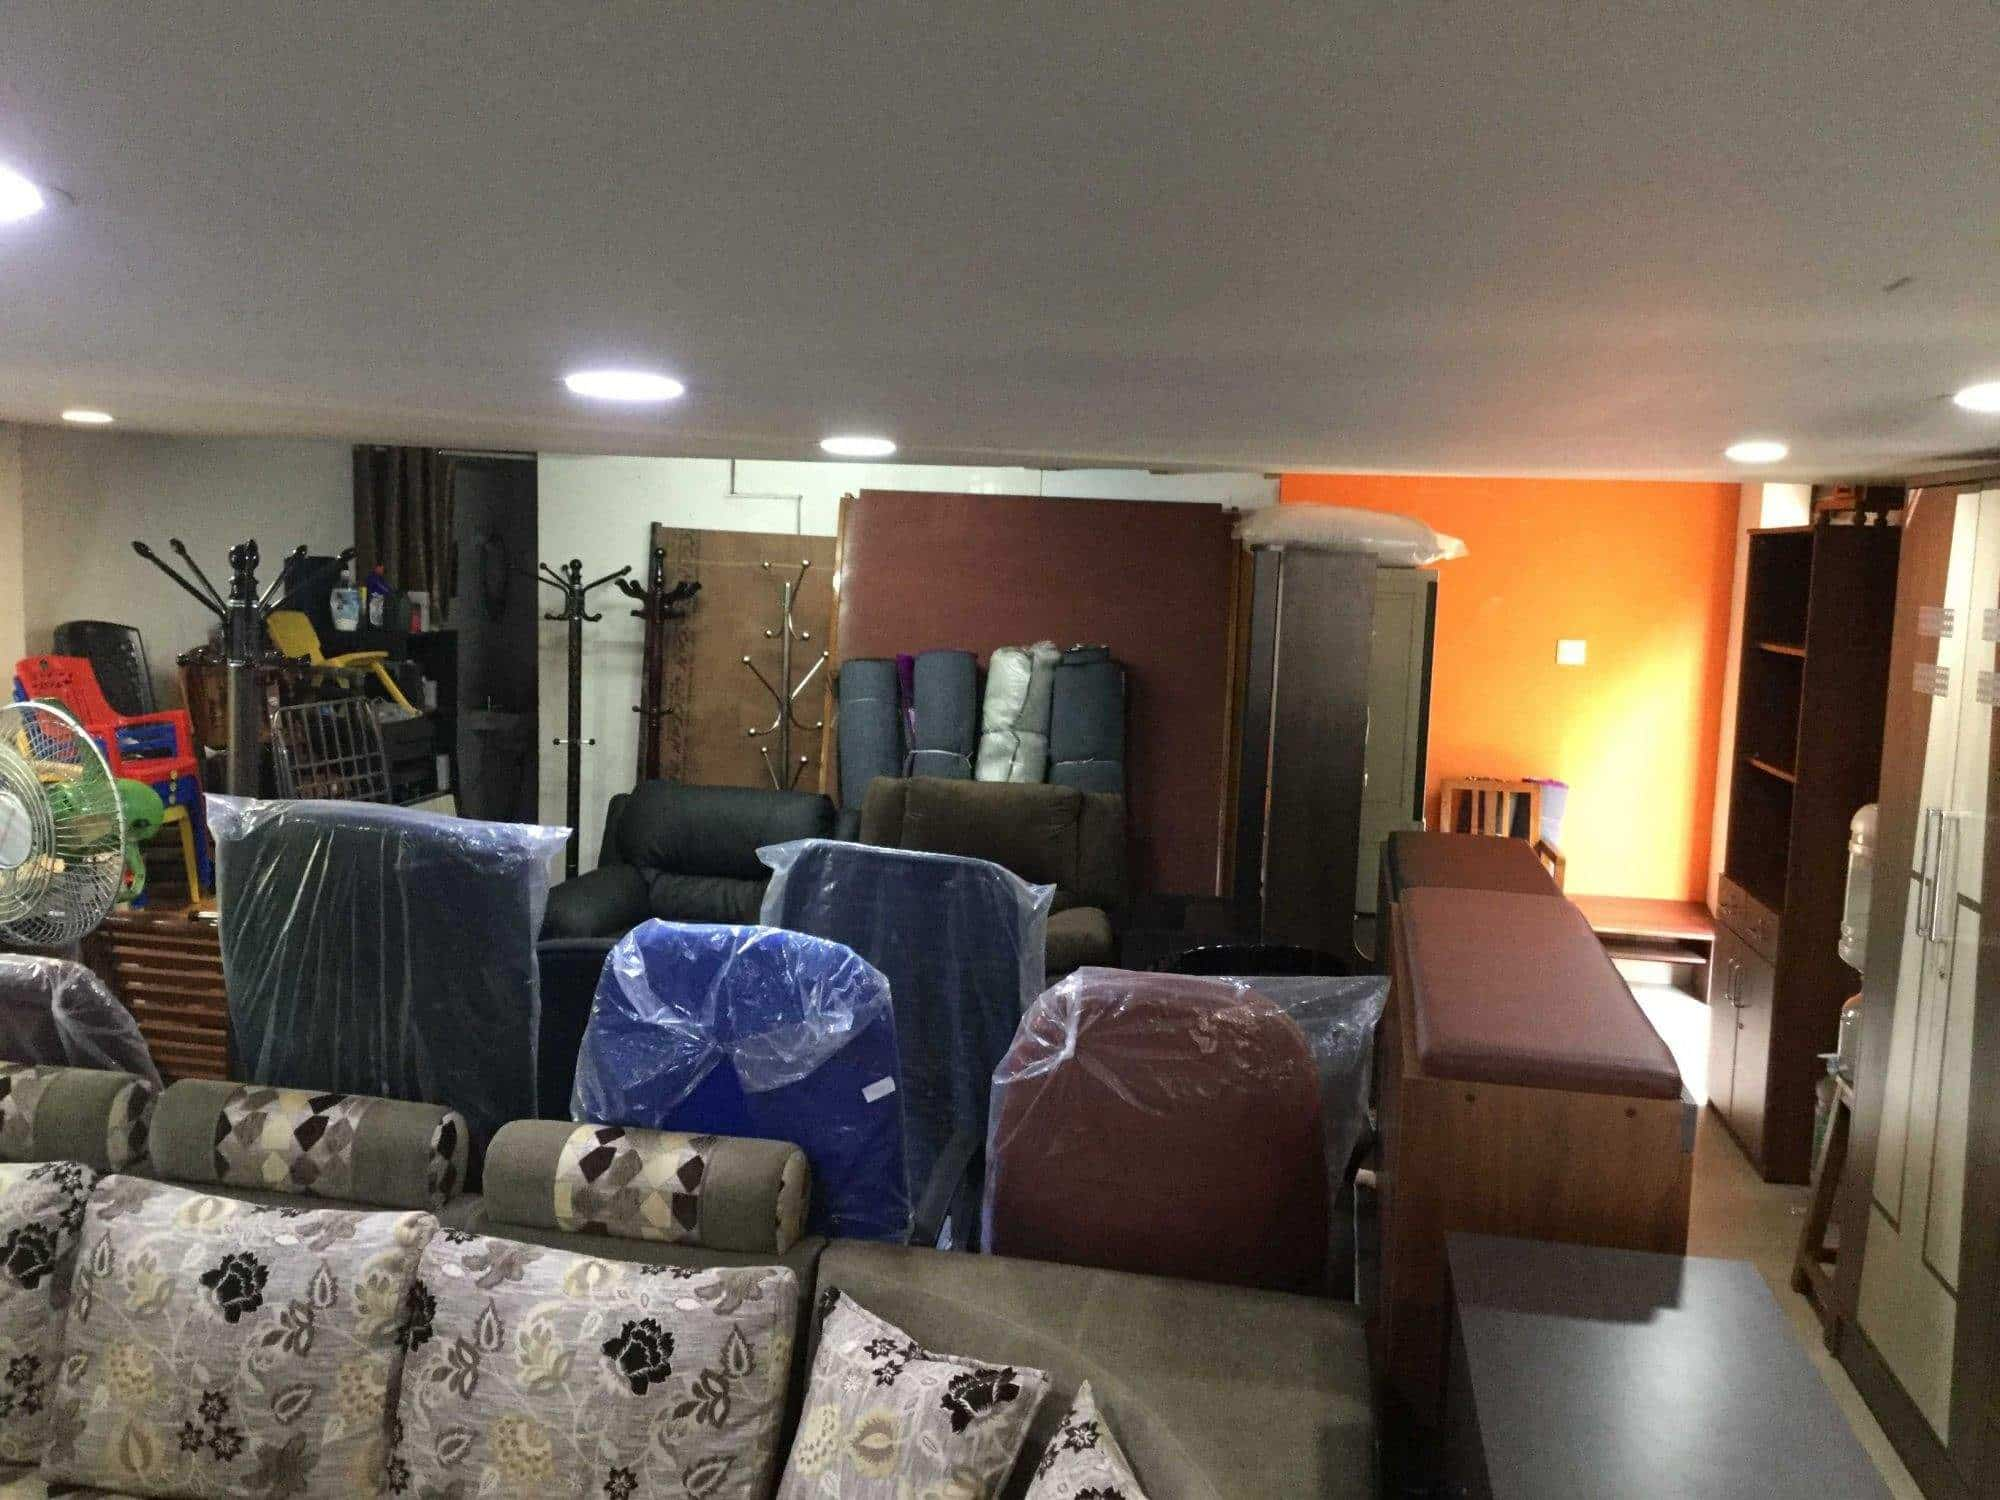 K R Furnitures And Interiors Photos Udupi Courts Udupi Pictures